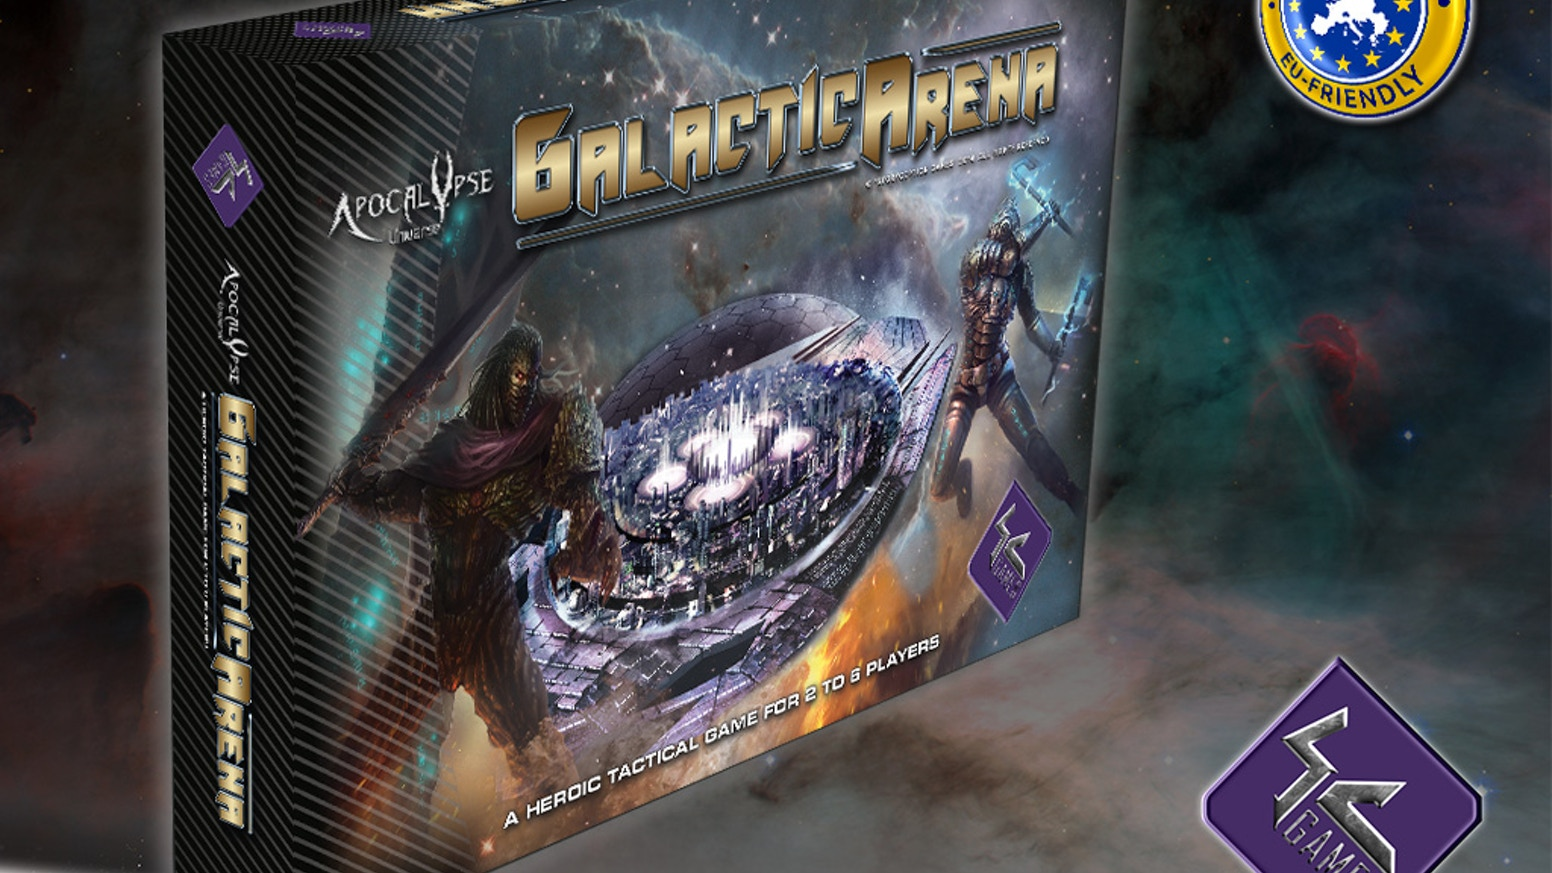 In this fast paced tactical battle boardgame, one fight lasts 15 minutes but no two fights are the same!